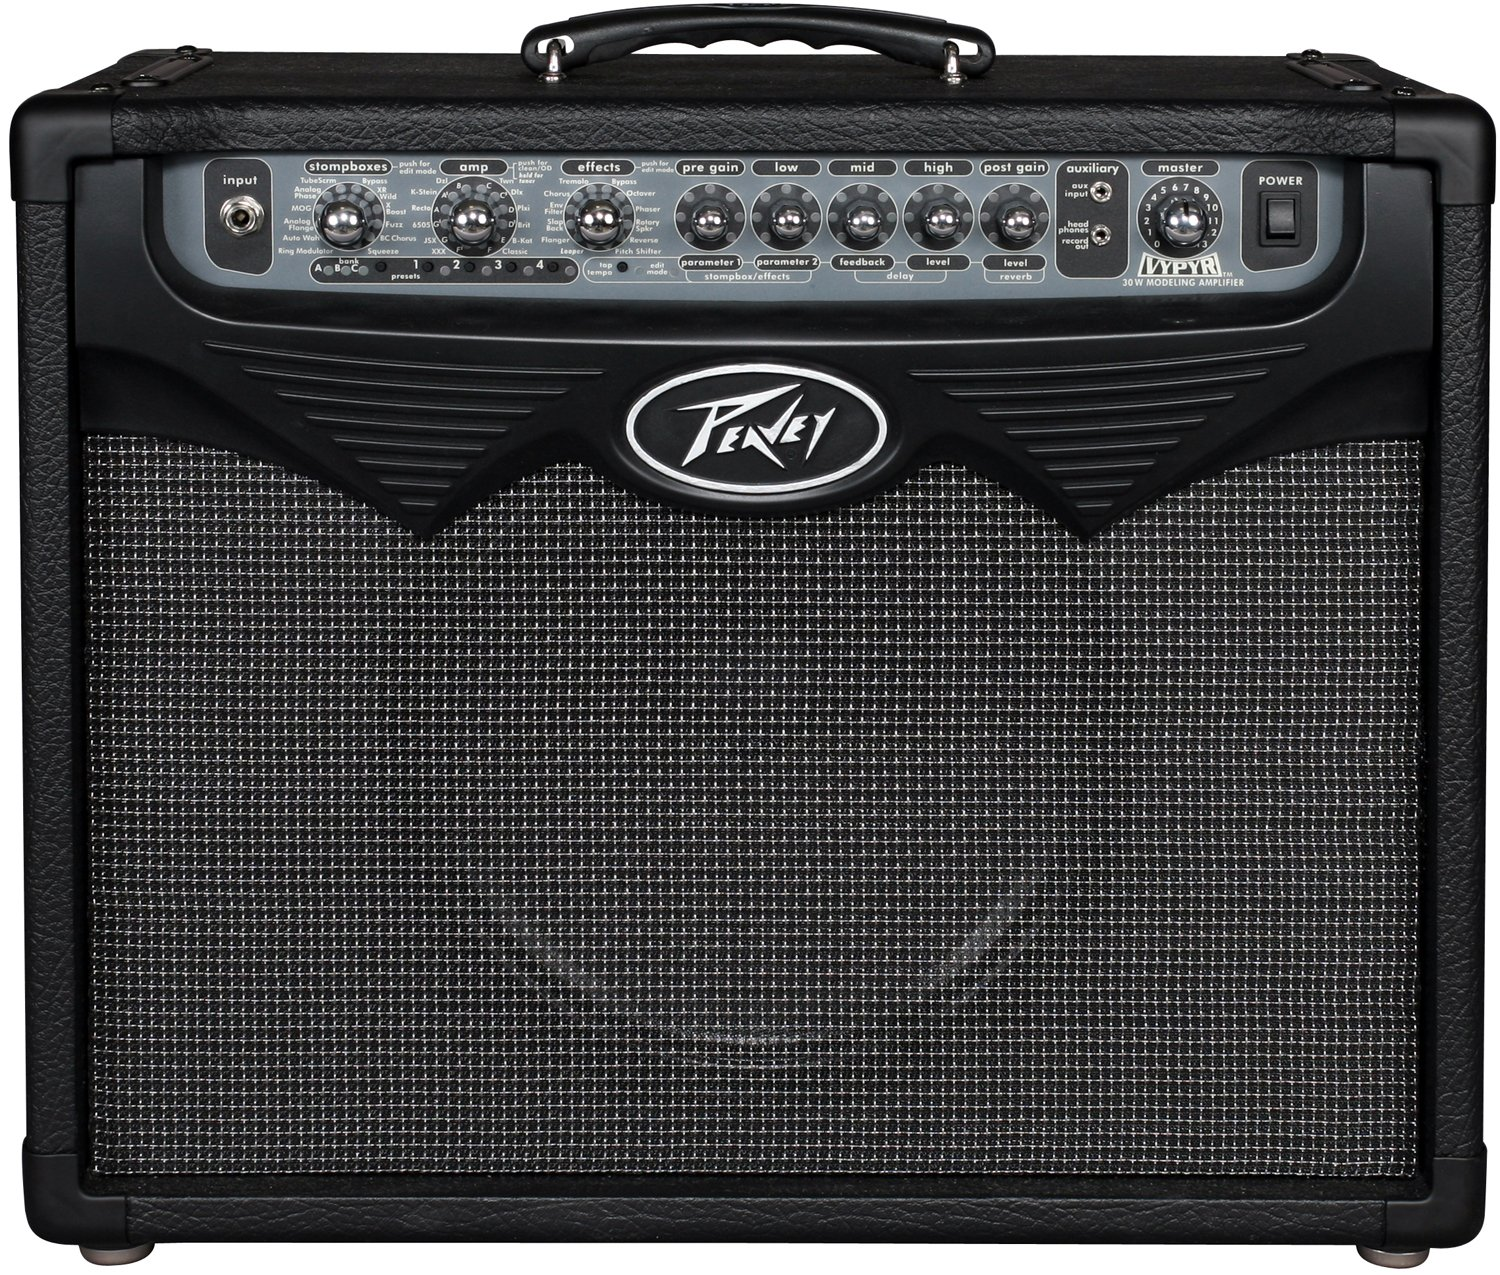 Peavey Vypyr 30 Modeling Electric Guitar Amplifier Circuits And Schematics Fuzzi Amps Other Effects Musical Instruments